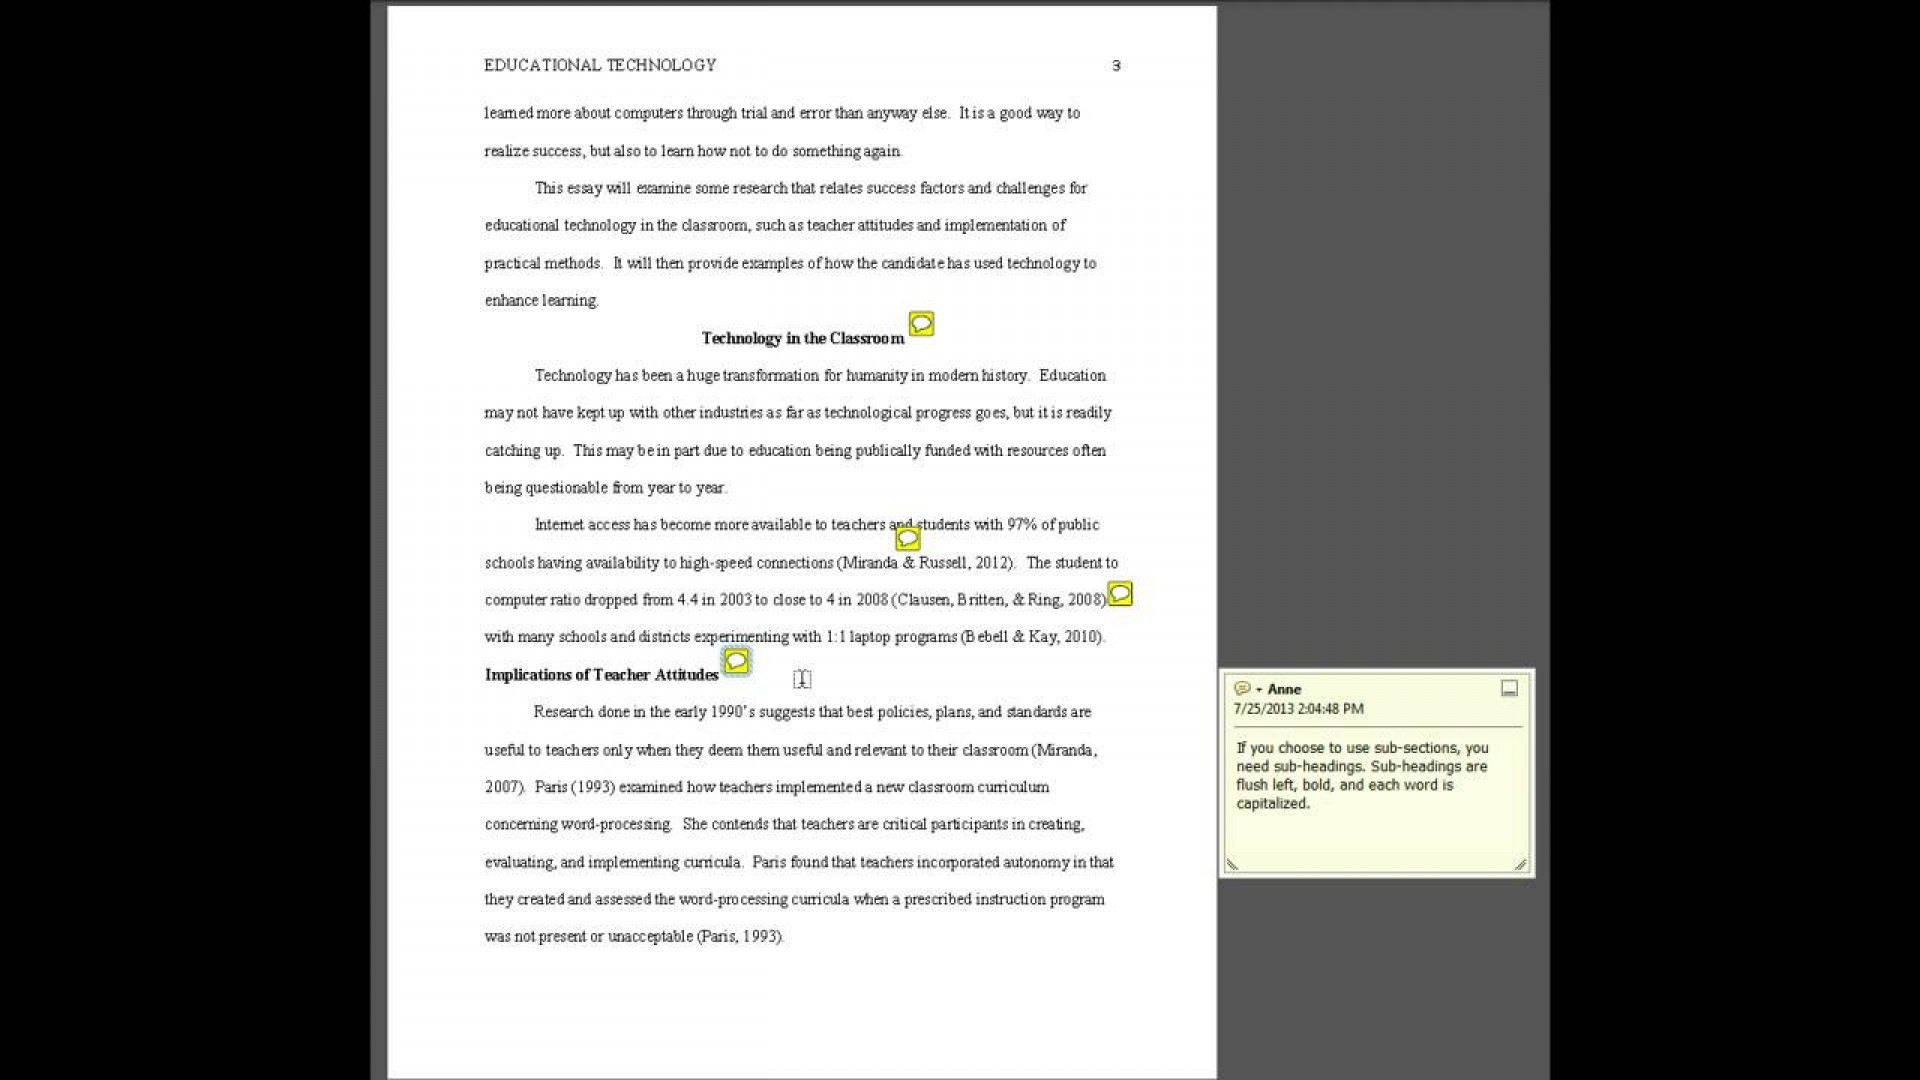 012 Maxresdefault Research Paper Apa Style Example Stunning 2013 1920